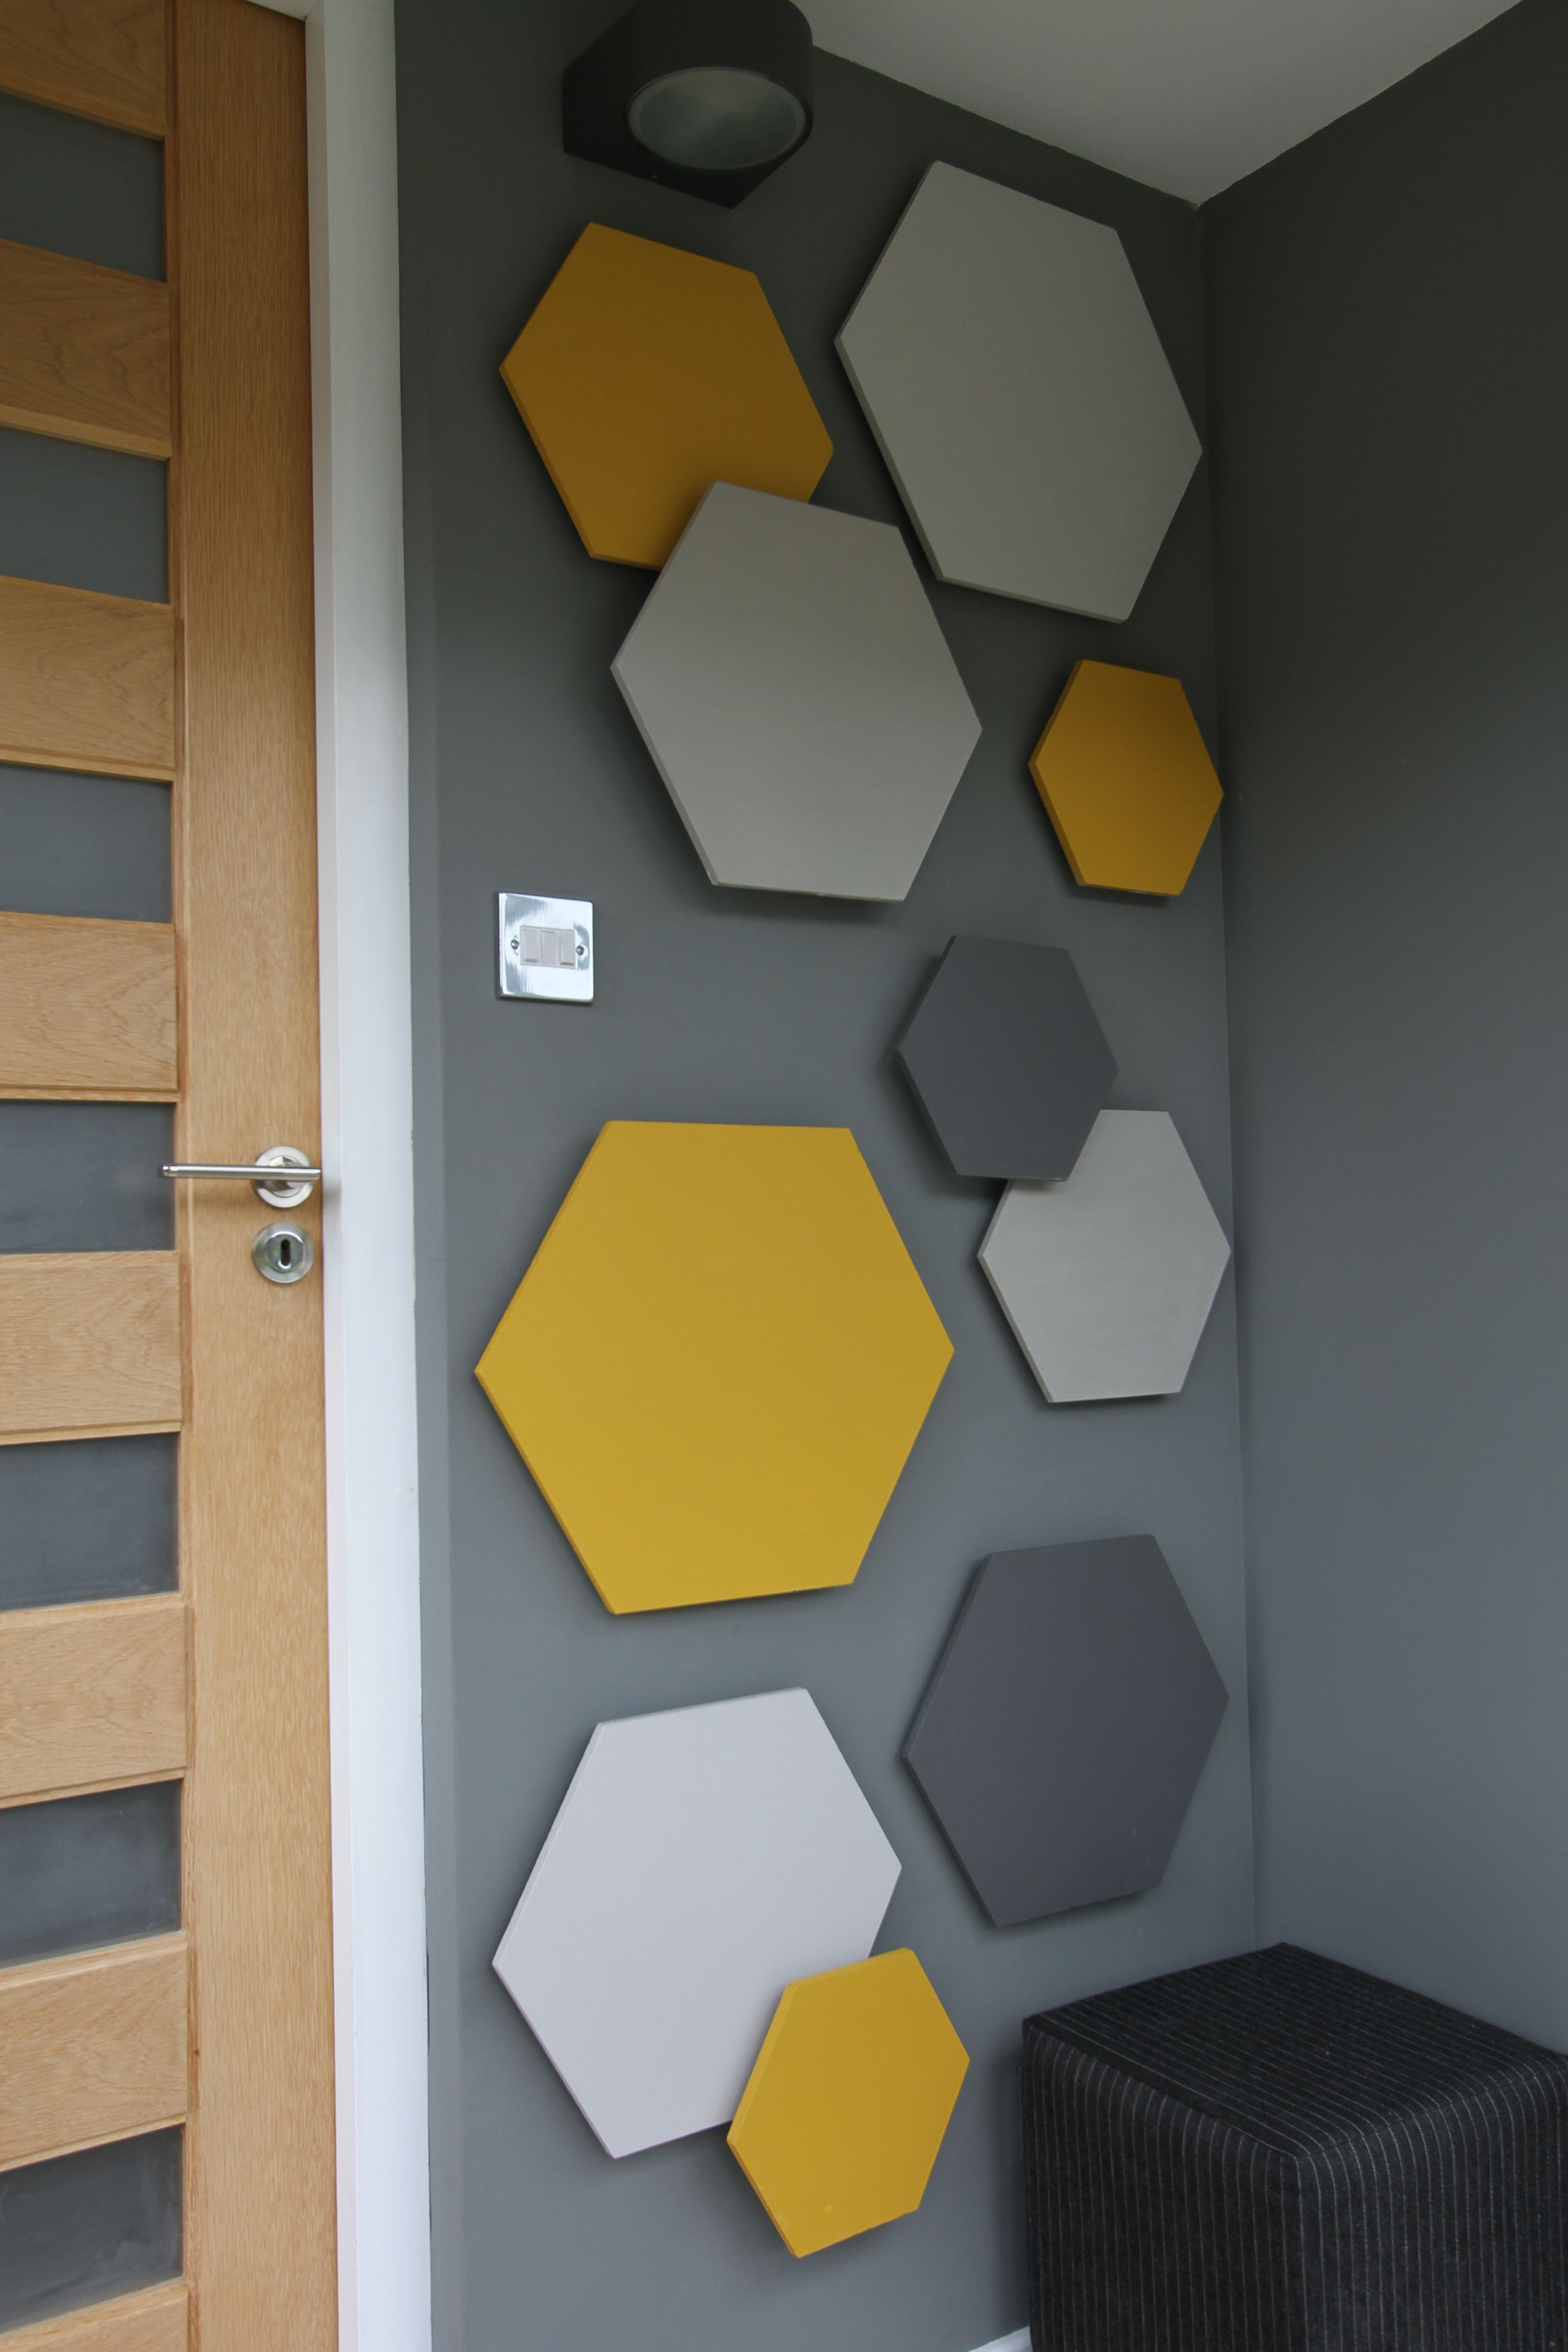 Hexagons Wall Art Decoración De